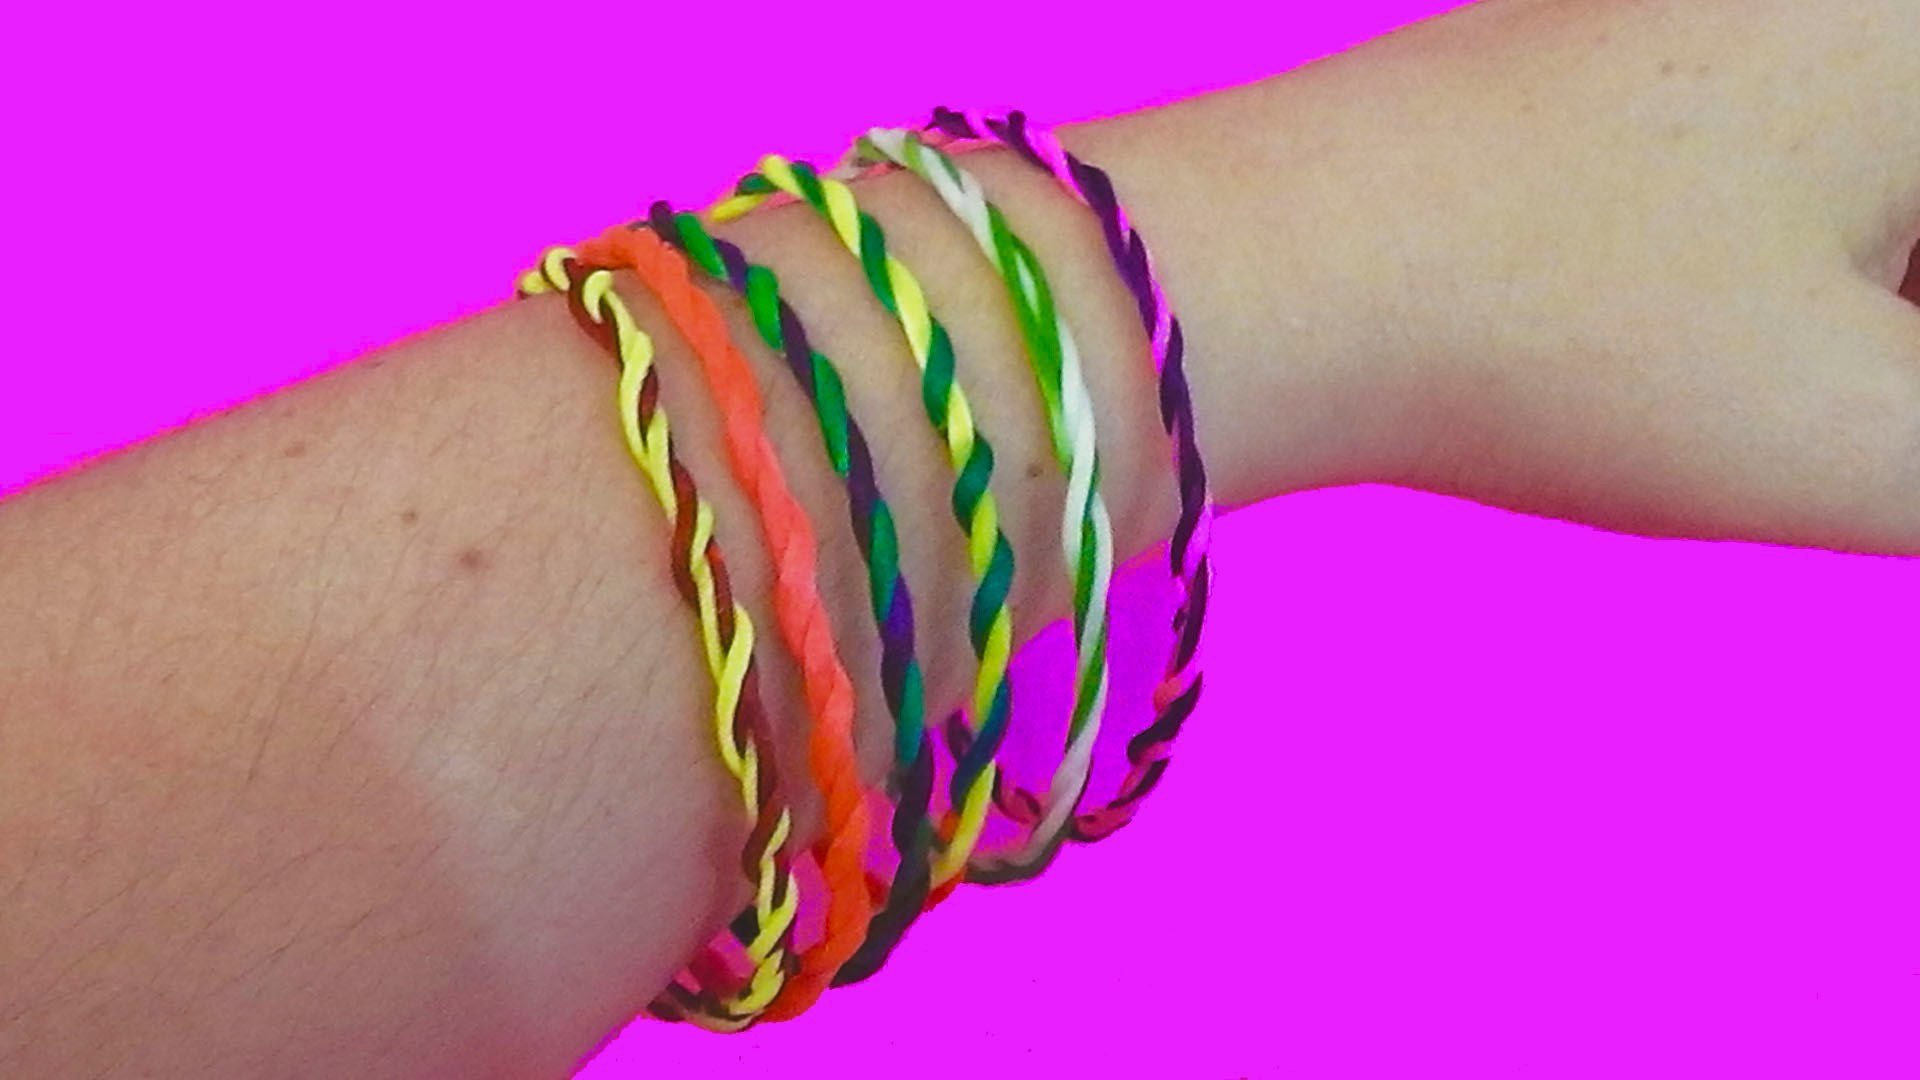 Diy bracelets easy with string. How to make bracelets with thread